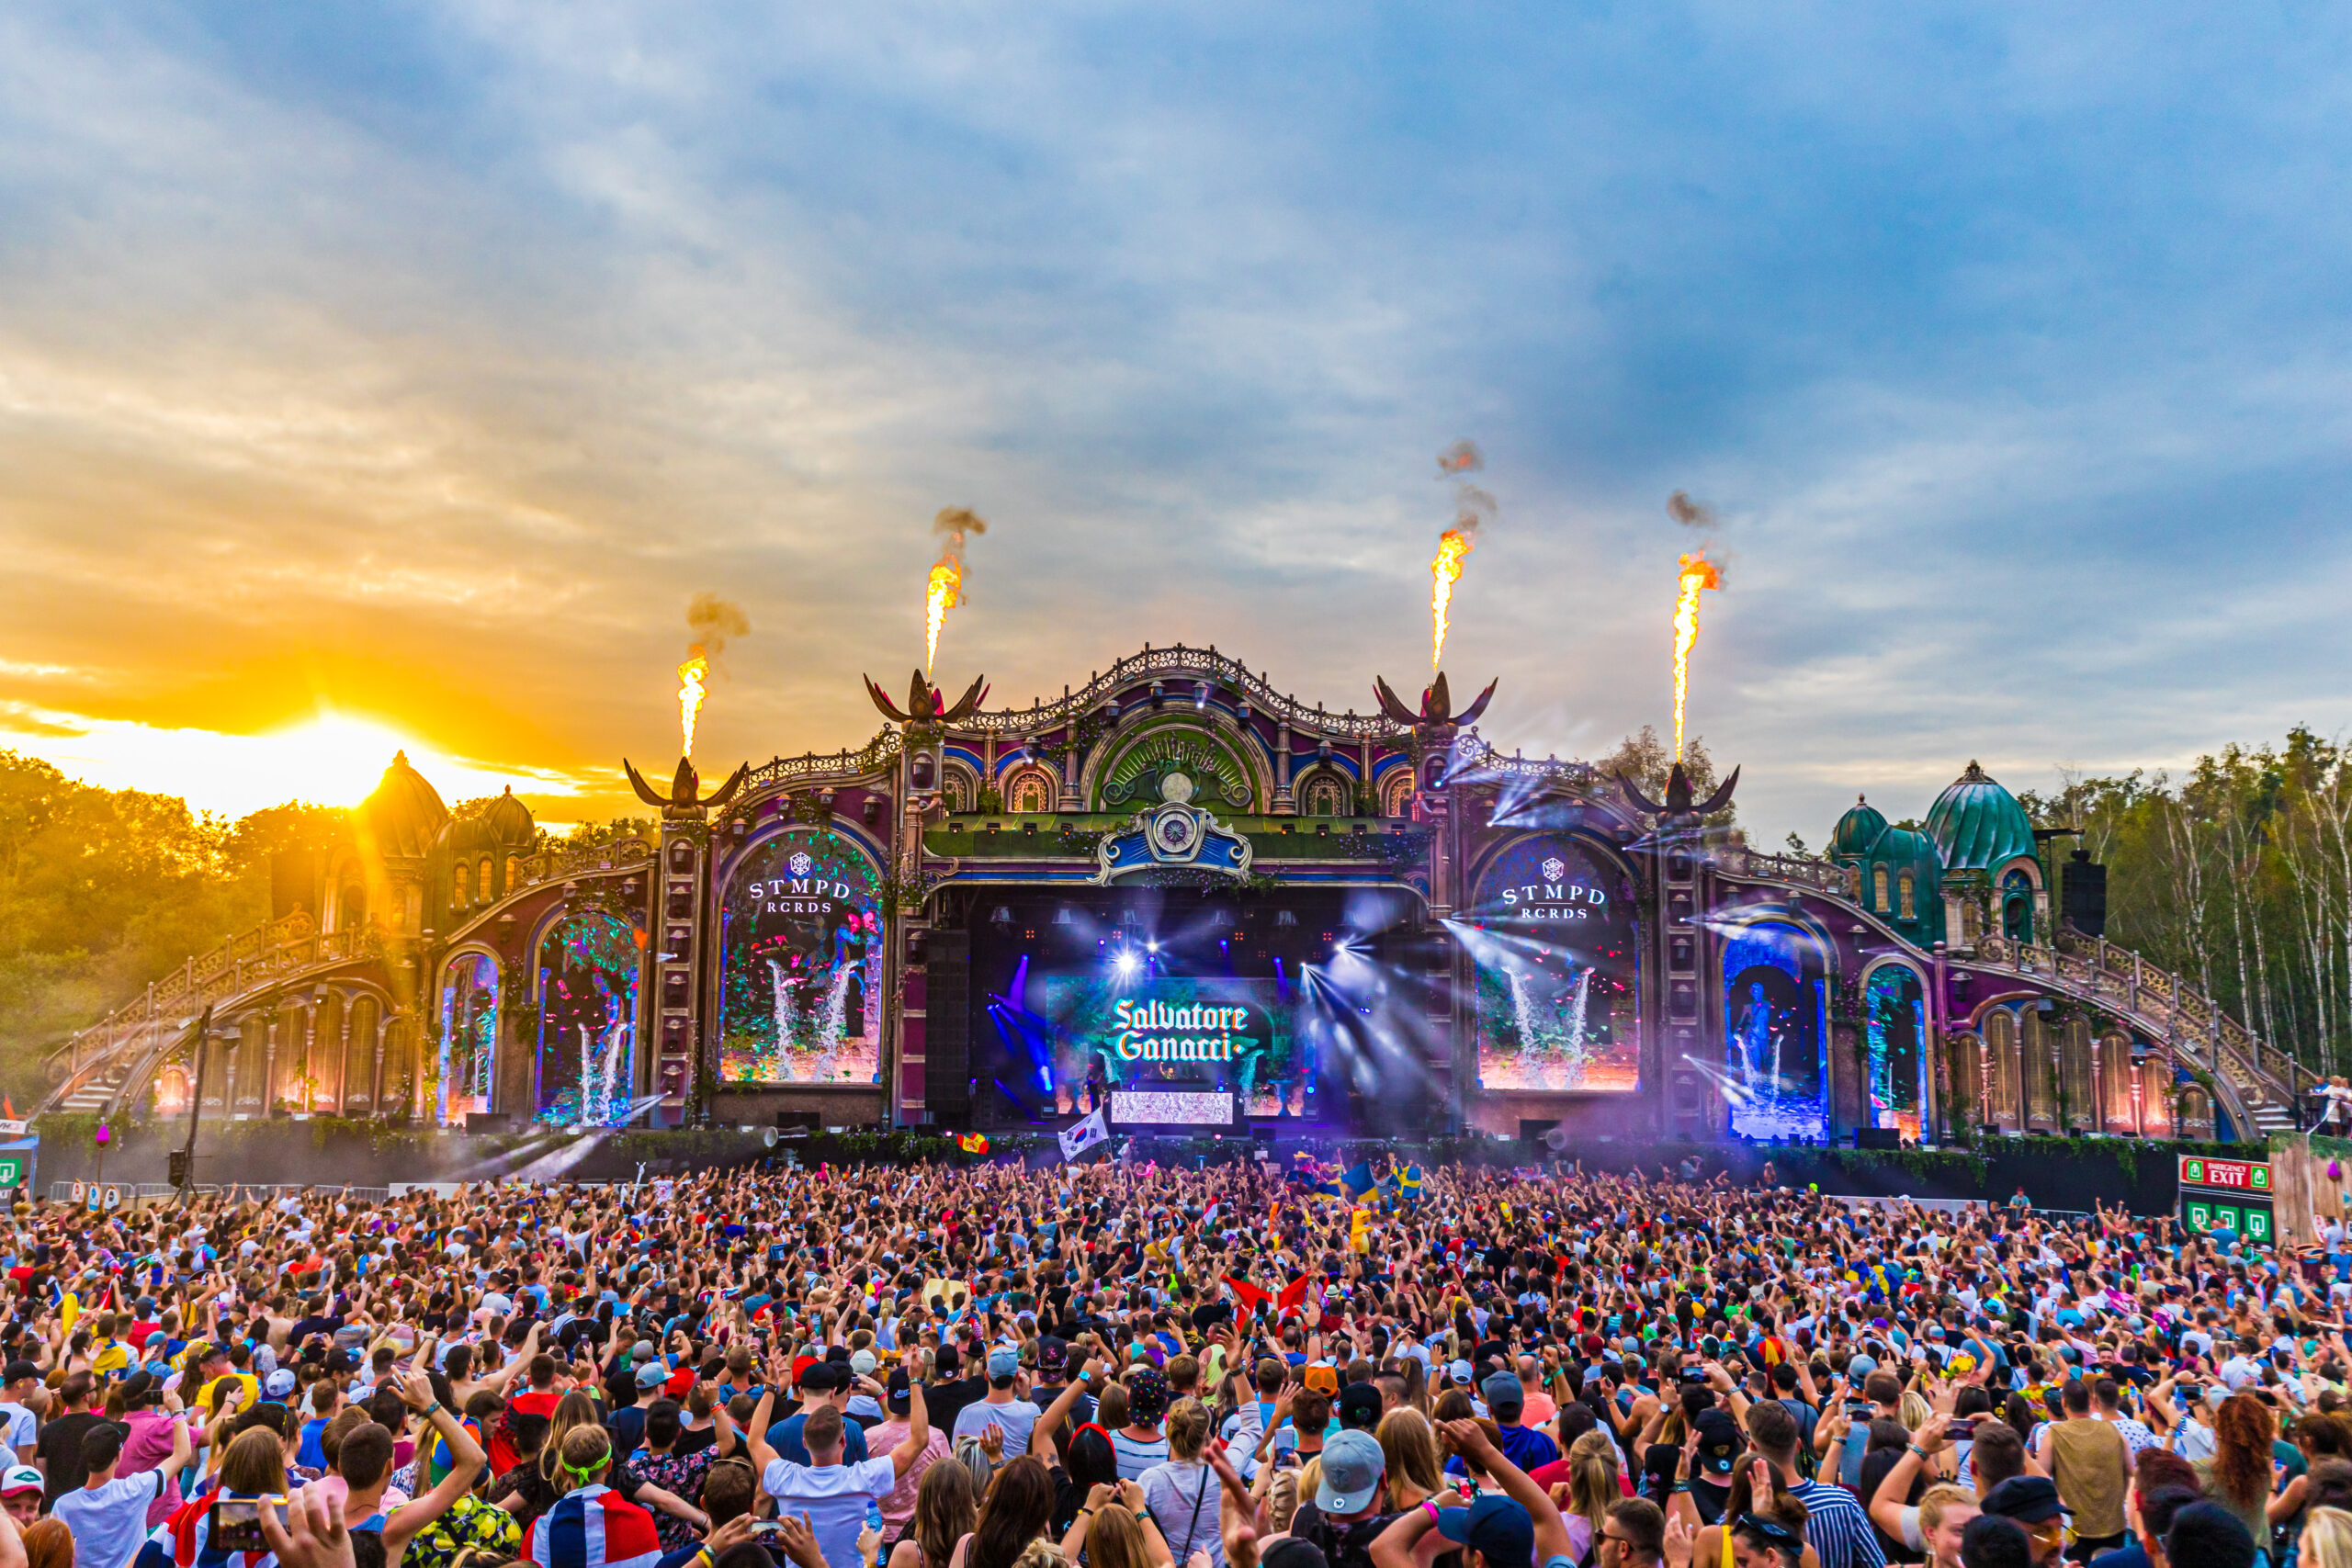 Tomorrowland offers a glimpse into the technological masterpiece of its digital festival